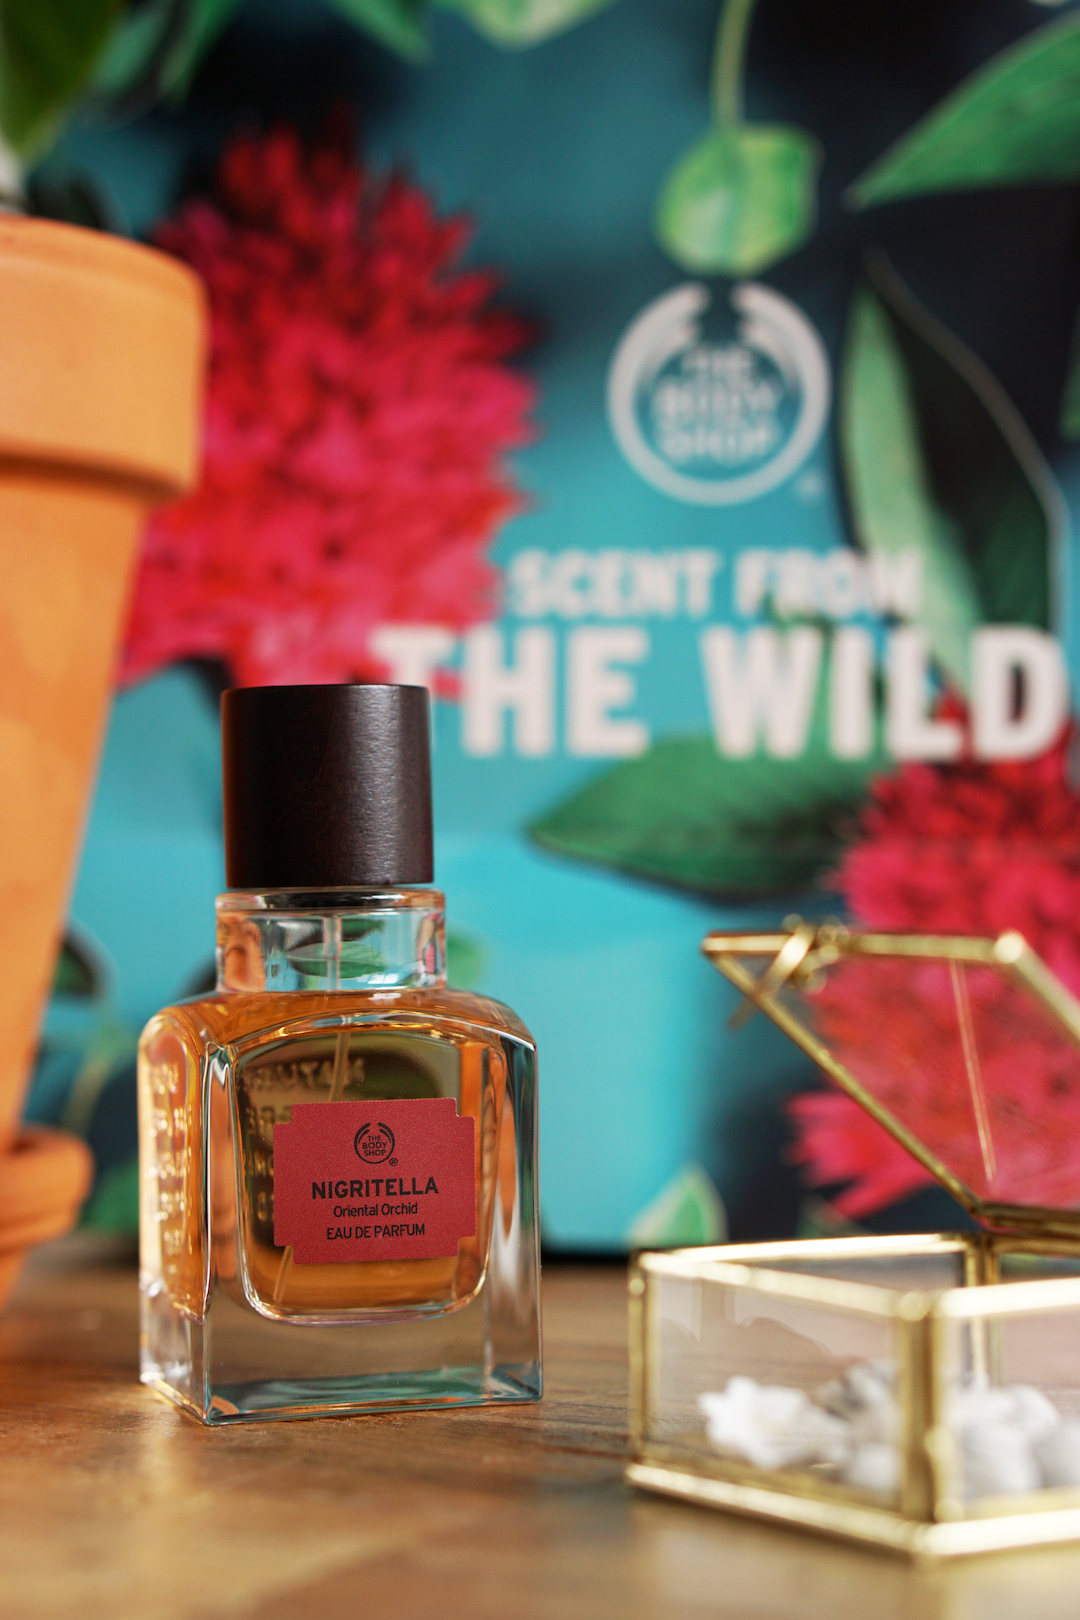 The Body Shop Elixirs of Nature Nigritella